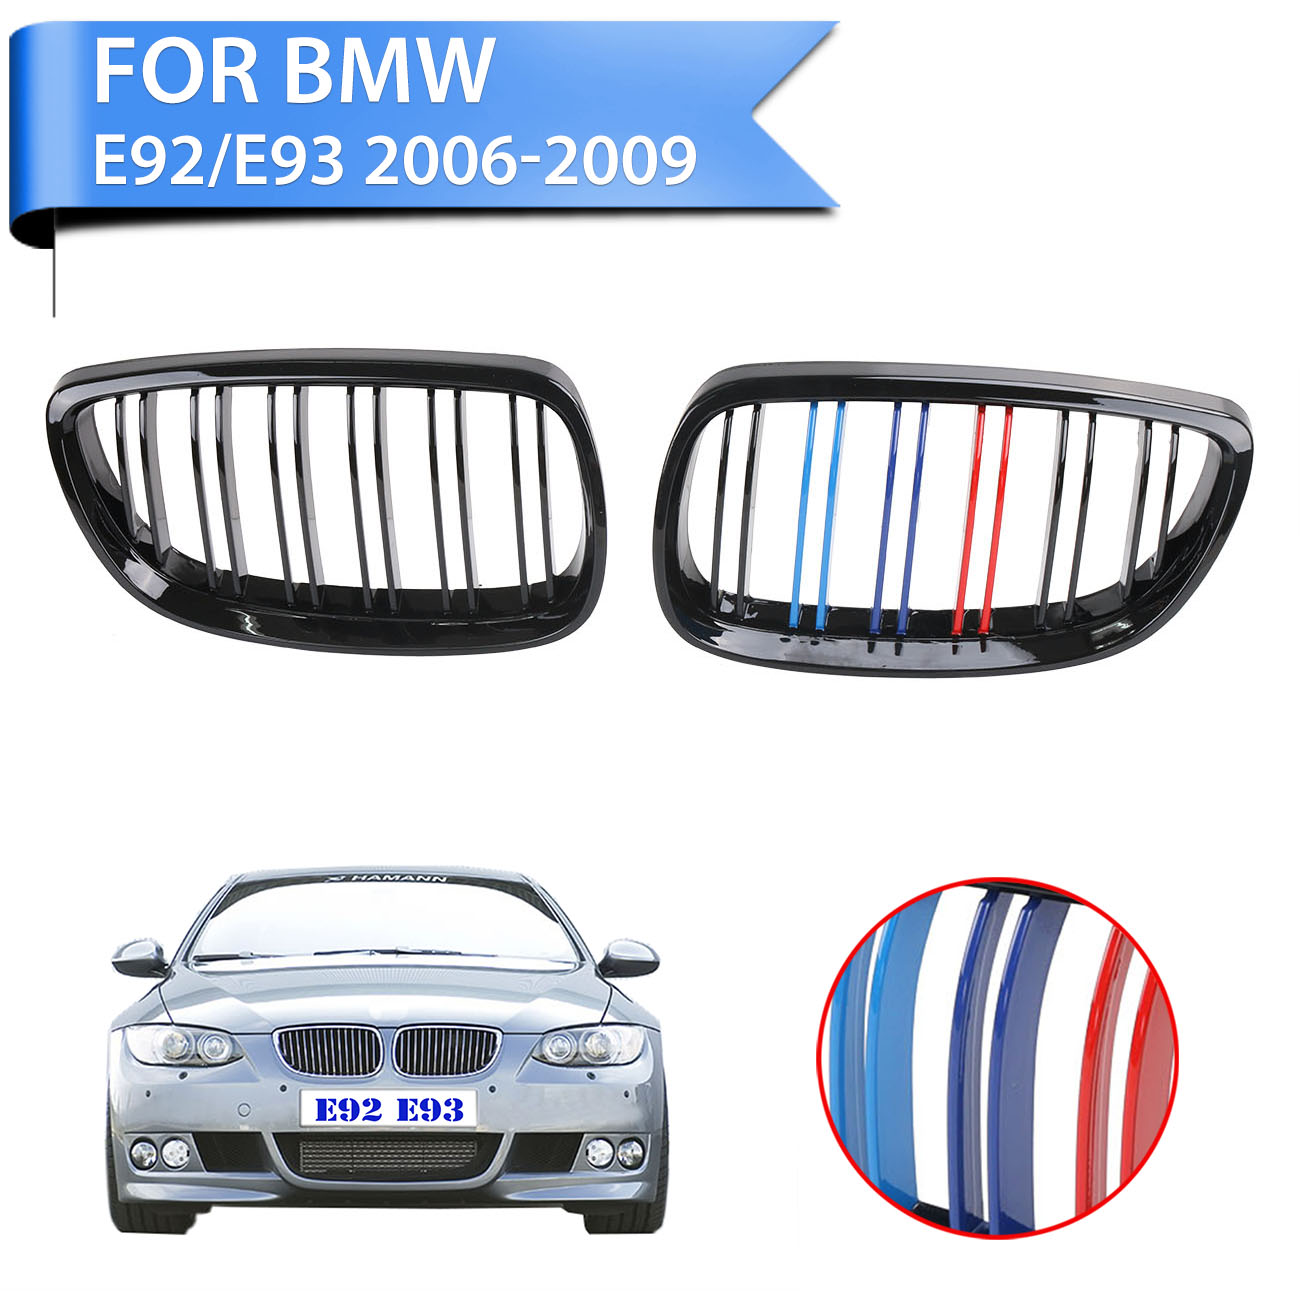 2x Front Kidney Grilles Double Line Slat Grill For BMW 2007 - 2010 E92 E93 328i 335i M3 2DOOR Gloss Black M Colored #P336 стоимость